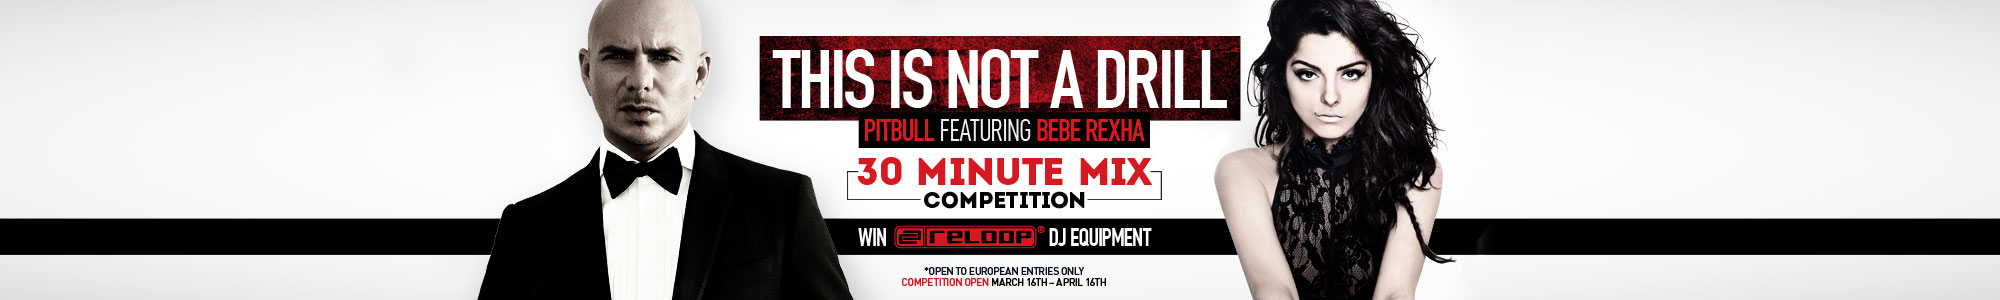 This Is Not A Drill Mix Competition Pitbull